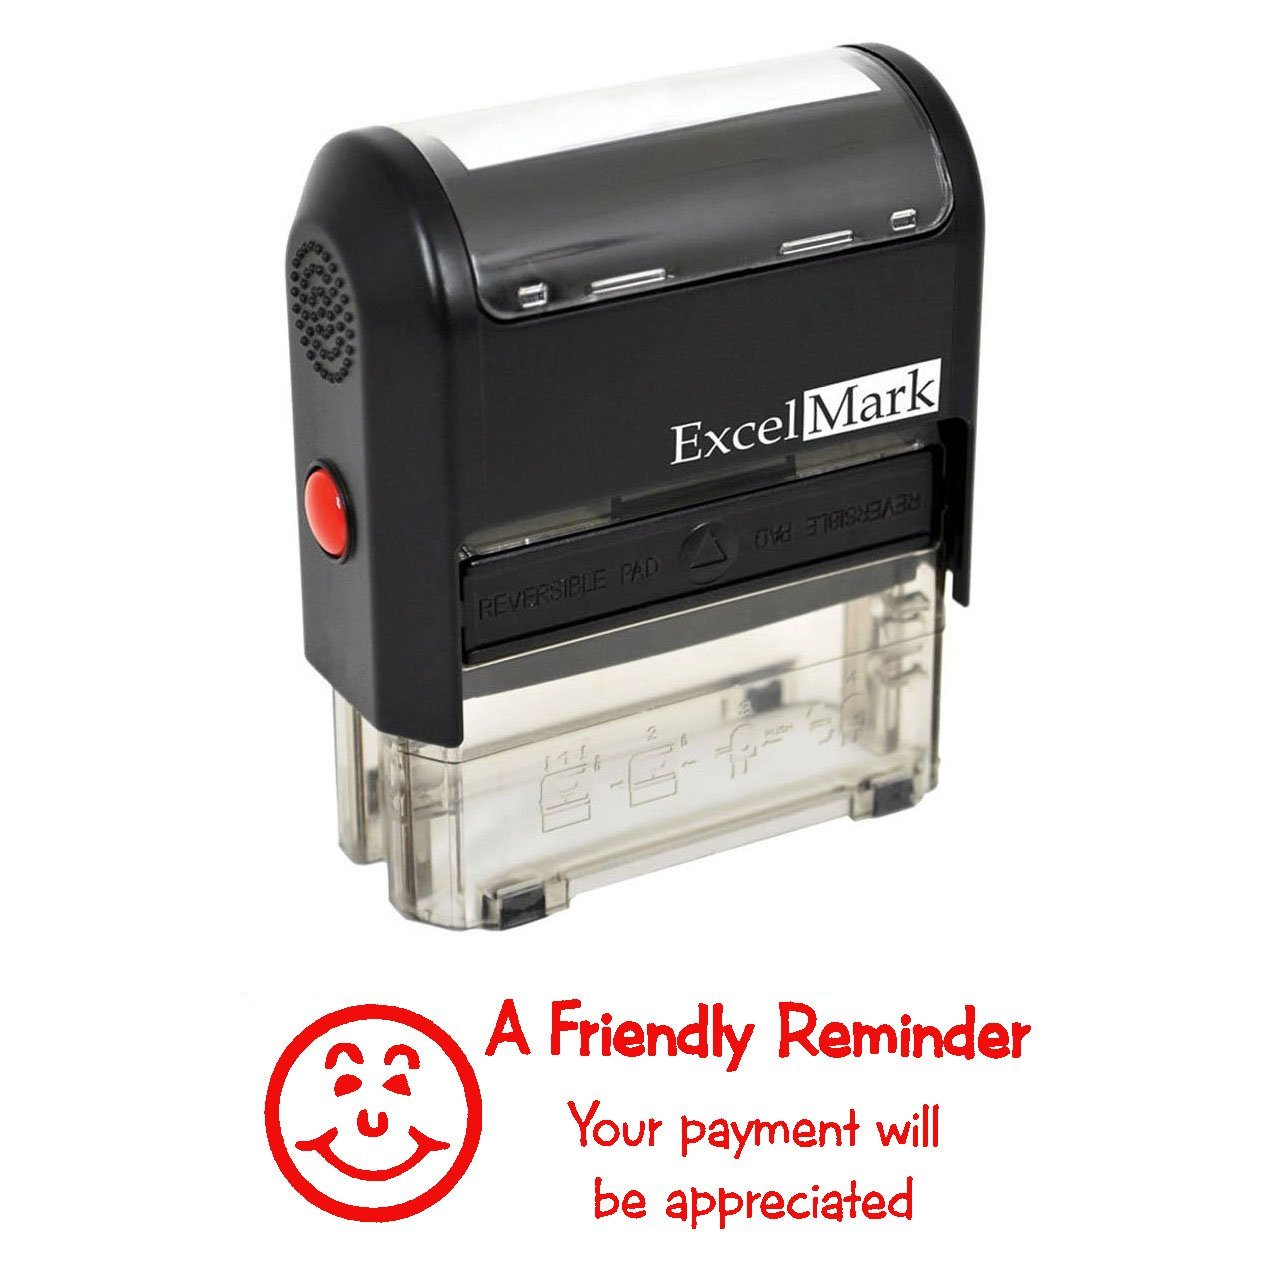 YOUR PAYMENT WILL BE APPRECIATED - Self Inking Bill Collection Stamp in Red Ink